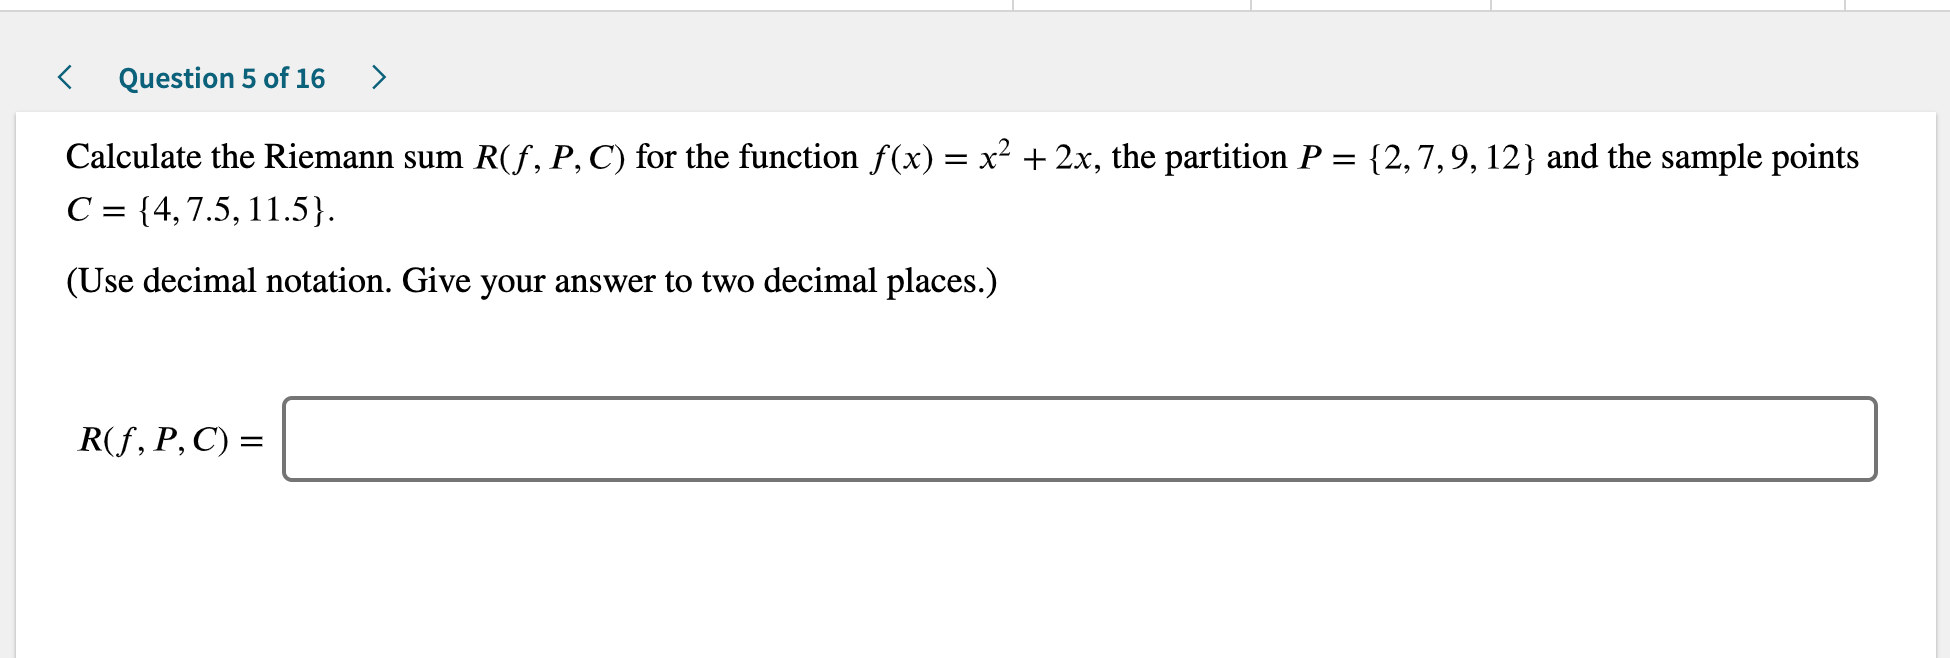 Question 5 of 16 Calculate the Riemann sum R(f, P, C) for the function f(x) x2 +2x, the partition P = {2,7,9,12} and the sample points C {4,7.5, 11.5} (Use decimal notation. Give your answer to two decimal places.) R(f, P, C)